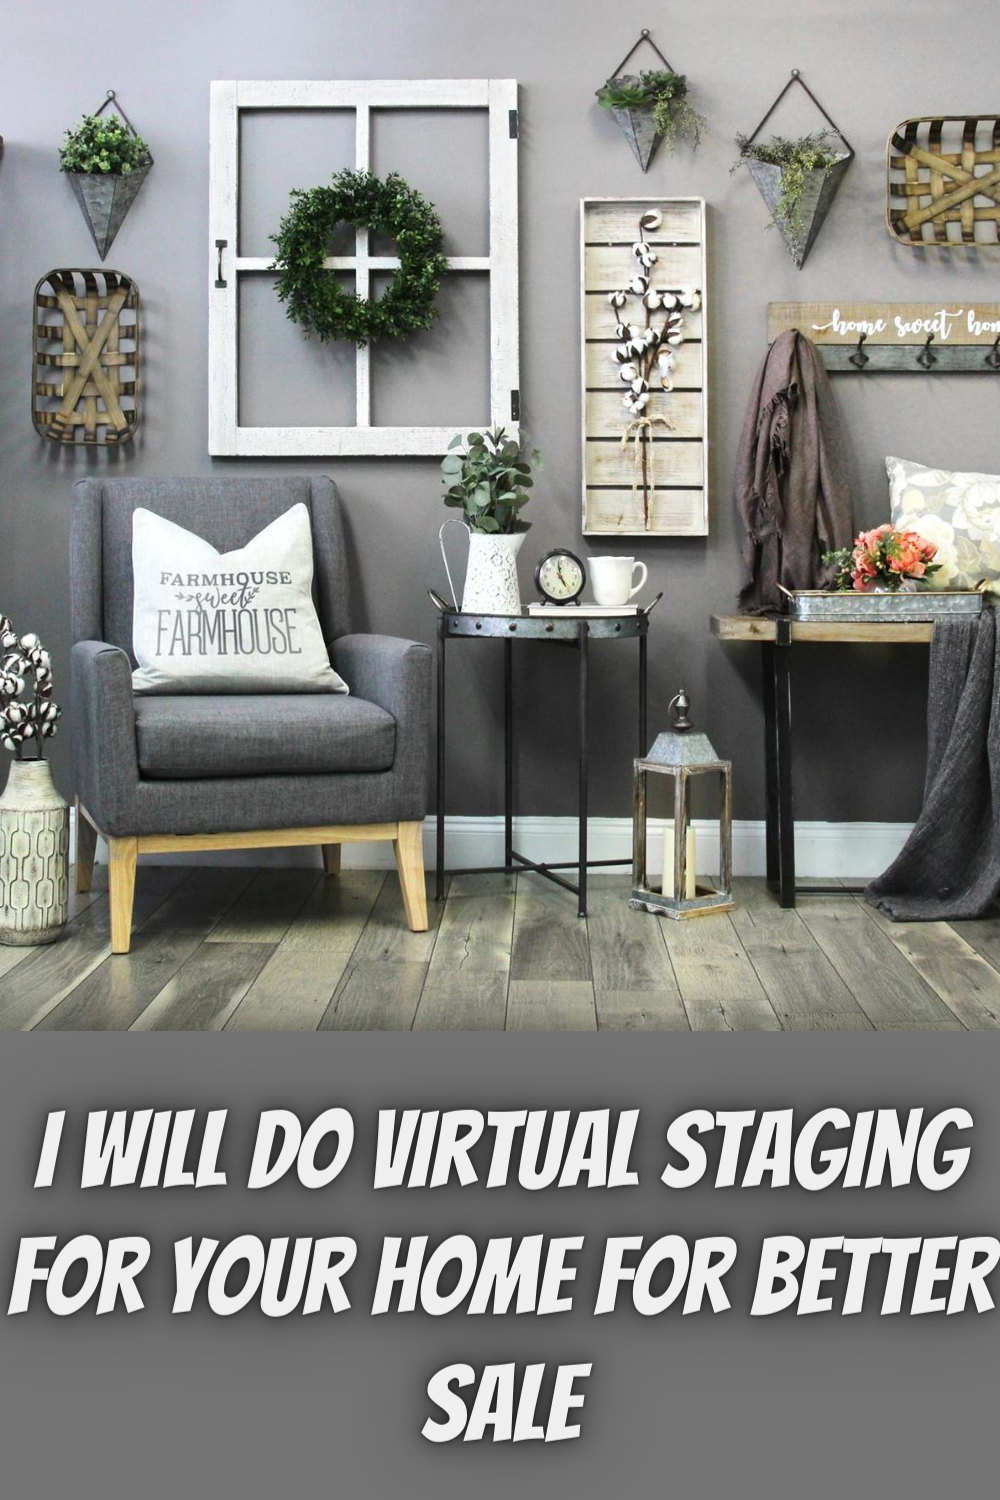 I Will Do Virtual Staging For Your Home For Better Sale Home Decor Dyi Virtual Staging Interior Architecture Design